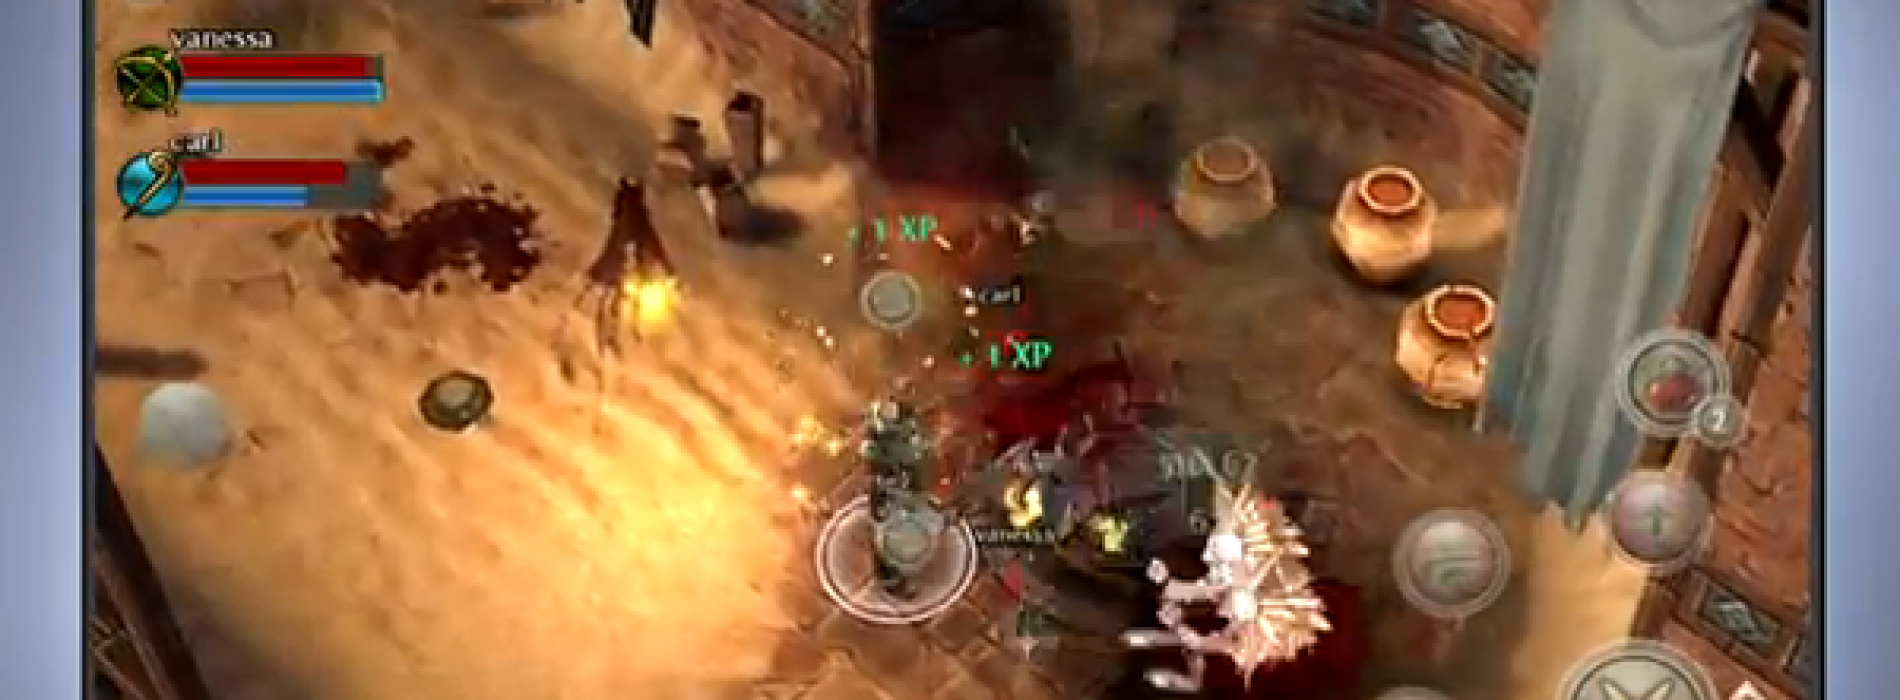 Gameloft begins hyping Dungeon Hunter III for Android [VIDEO]